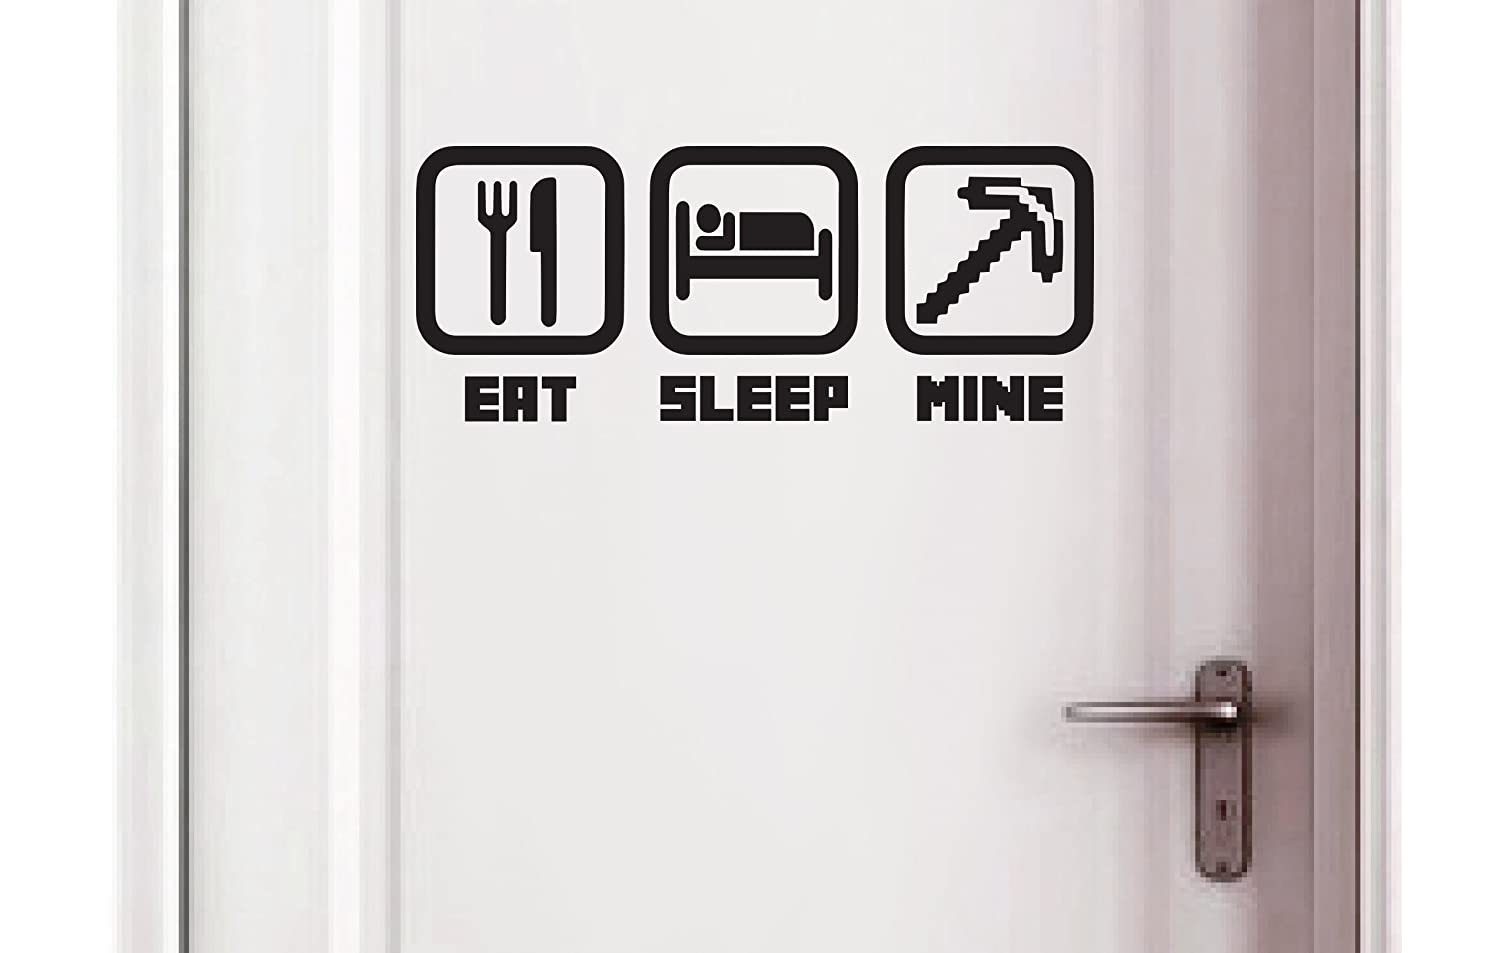 Eat - Sleep - Mine - Kids Bedroom Door Play Room Wall Vinyl Sticker Aufkleber (250x100mm) by Inspired Walls® Inspired Walls®